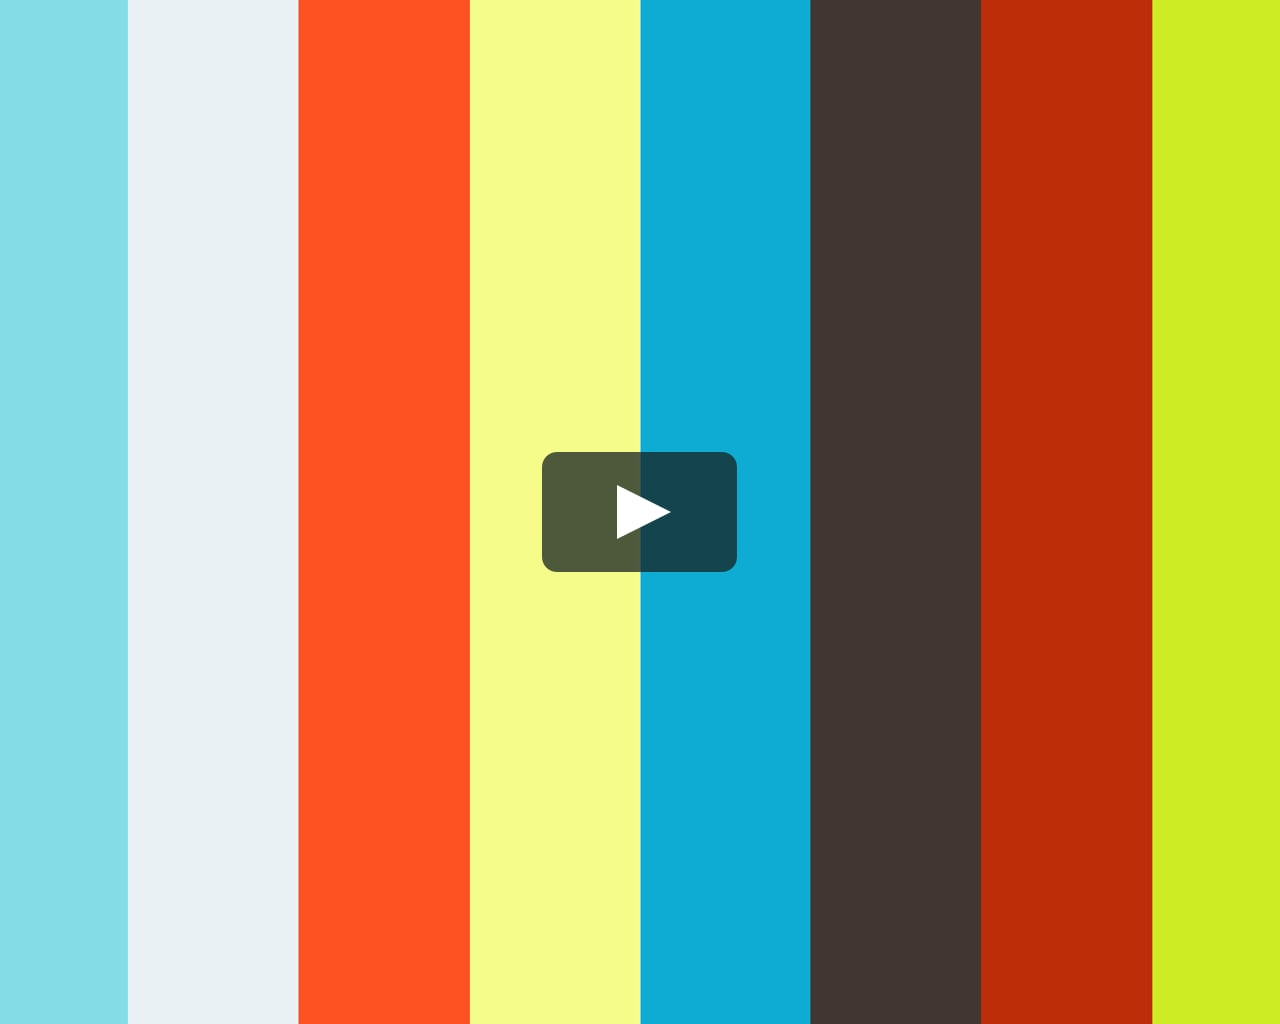 IBM BPM 7 5 - Working with Task Lists for selecting a task